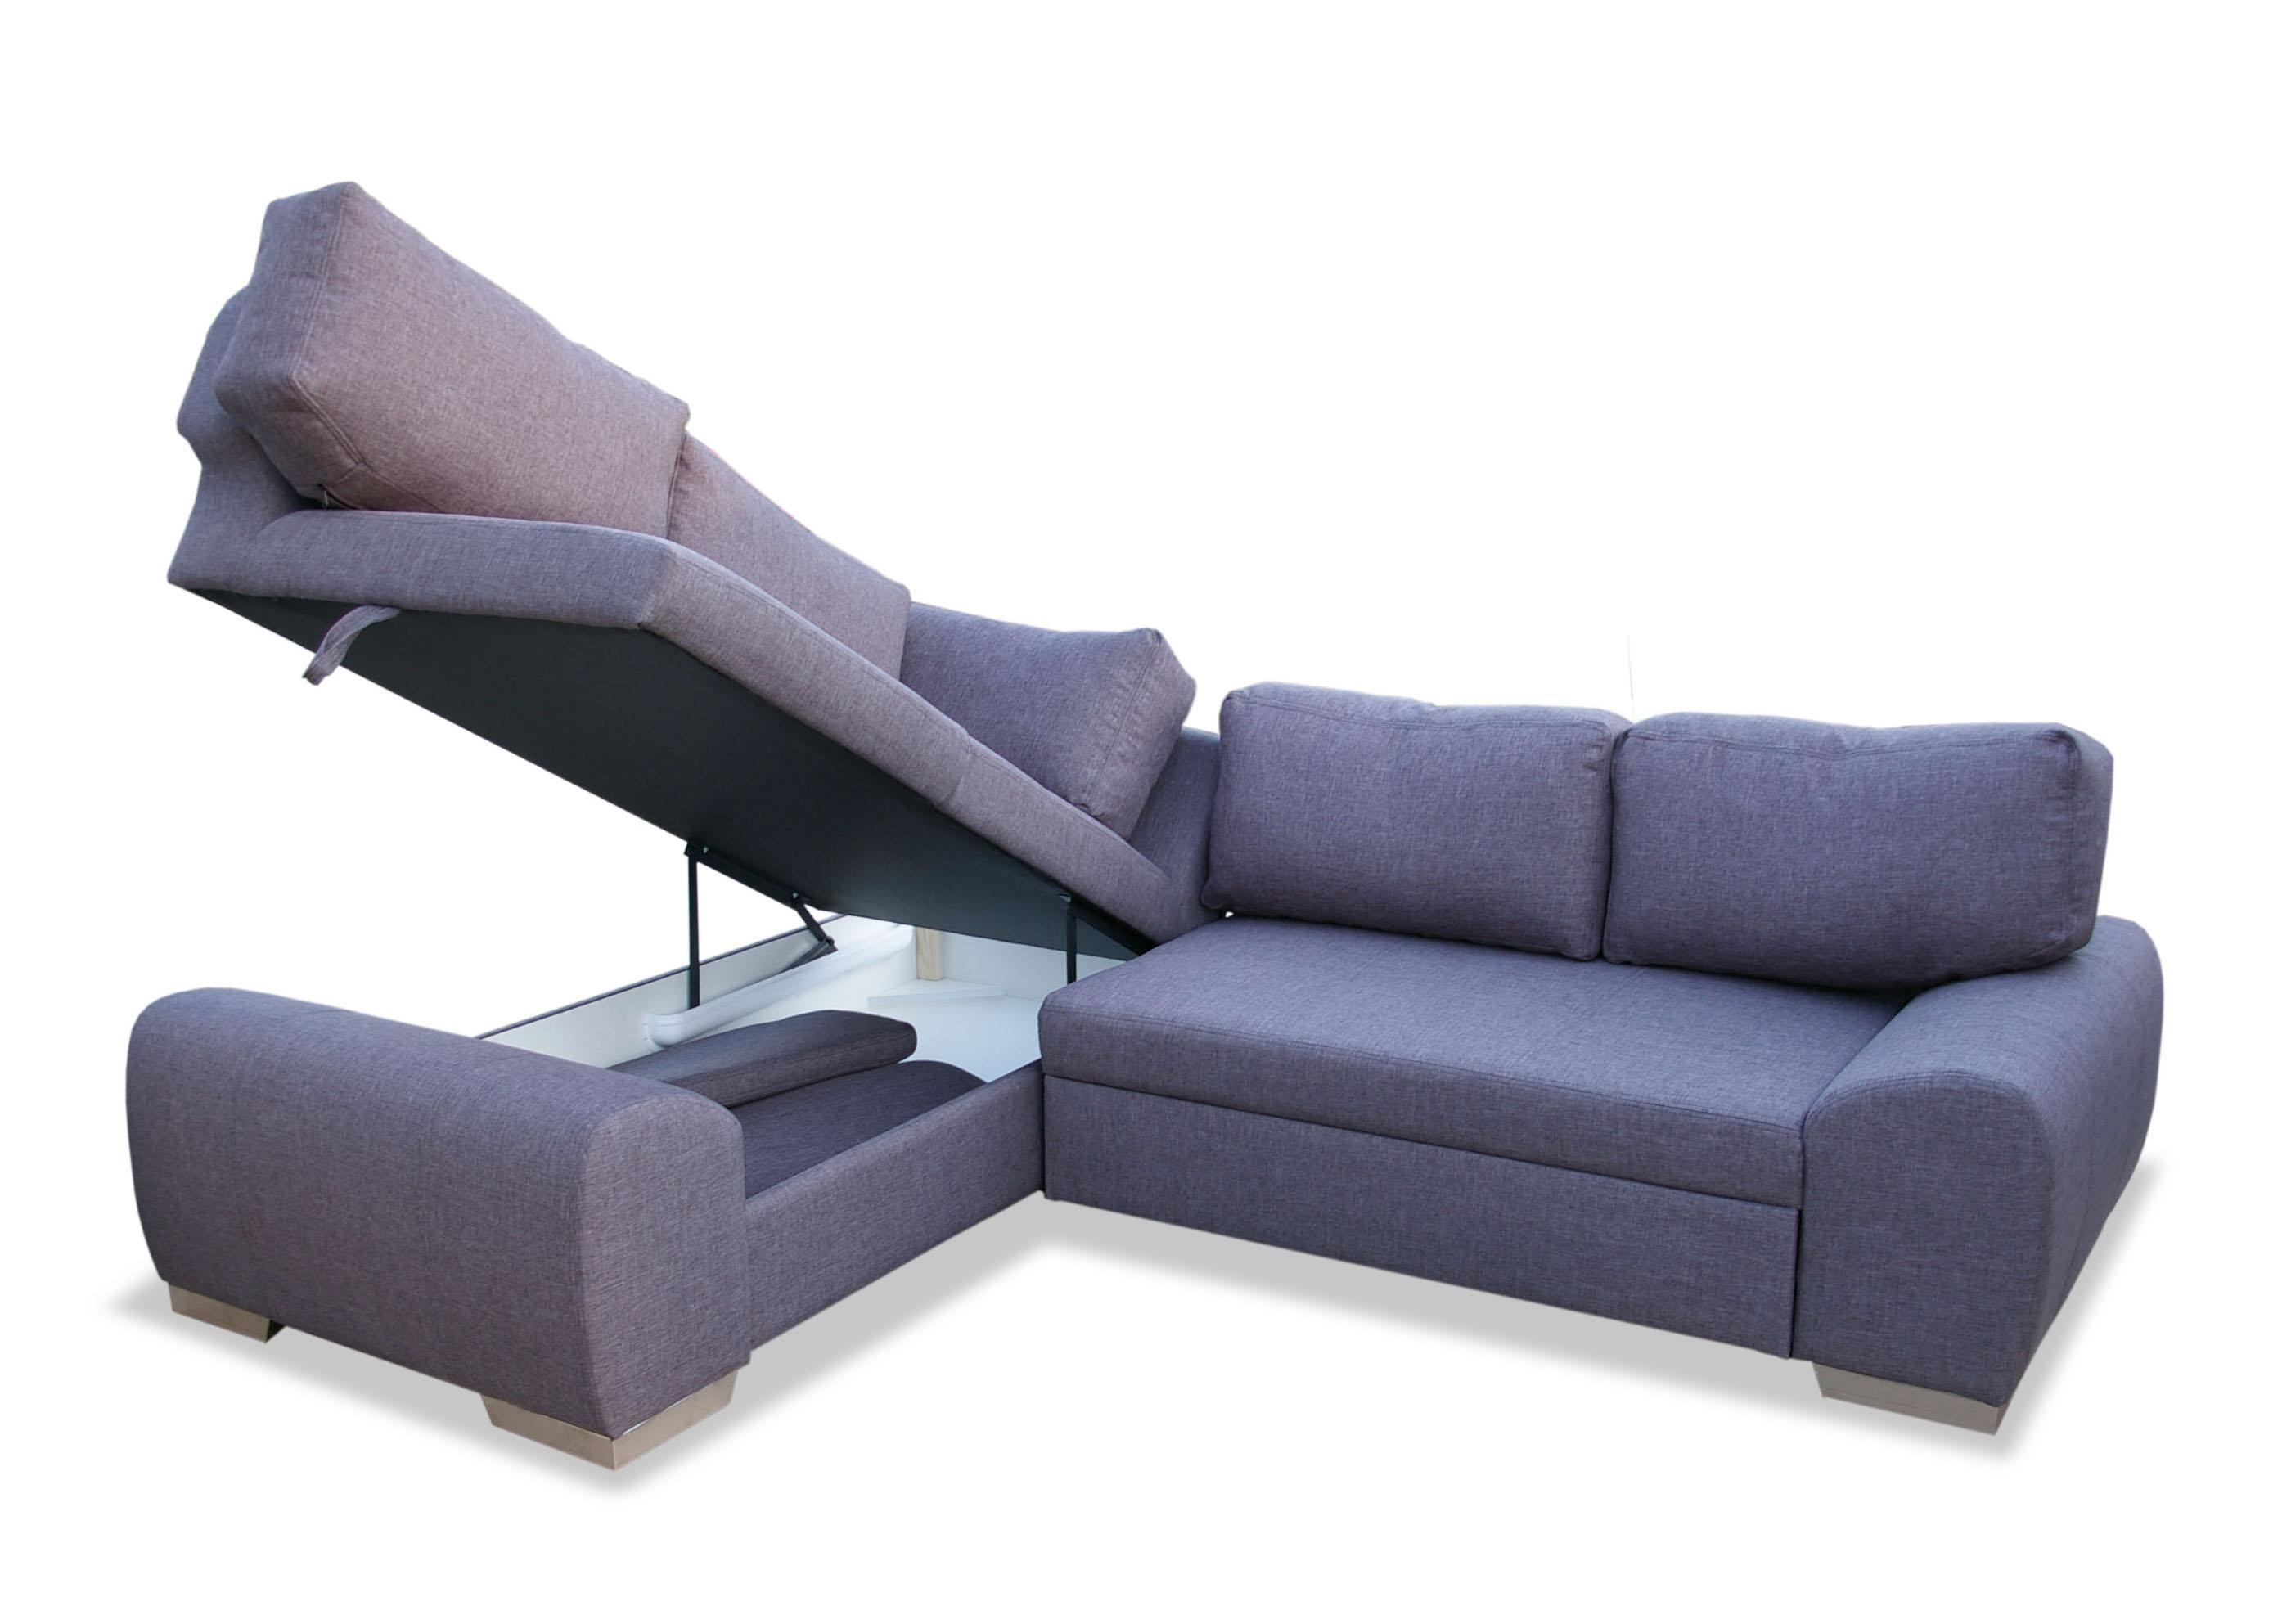 Sofas : Awesome Sofa With Storage Space Leather Chesterfield Sofa Pertaining To Leather Storage Sofas (View 14 of 21)